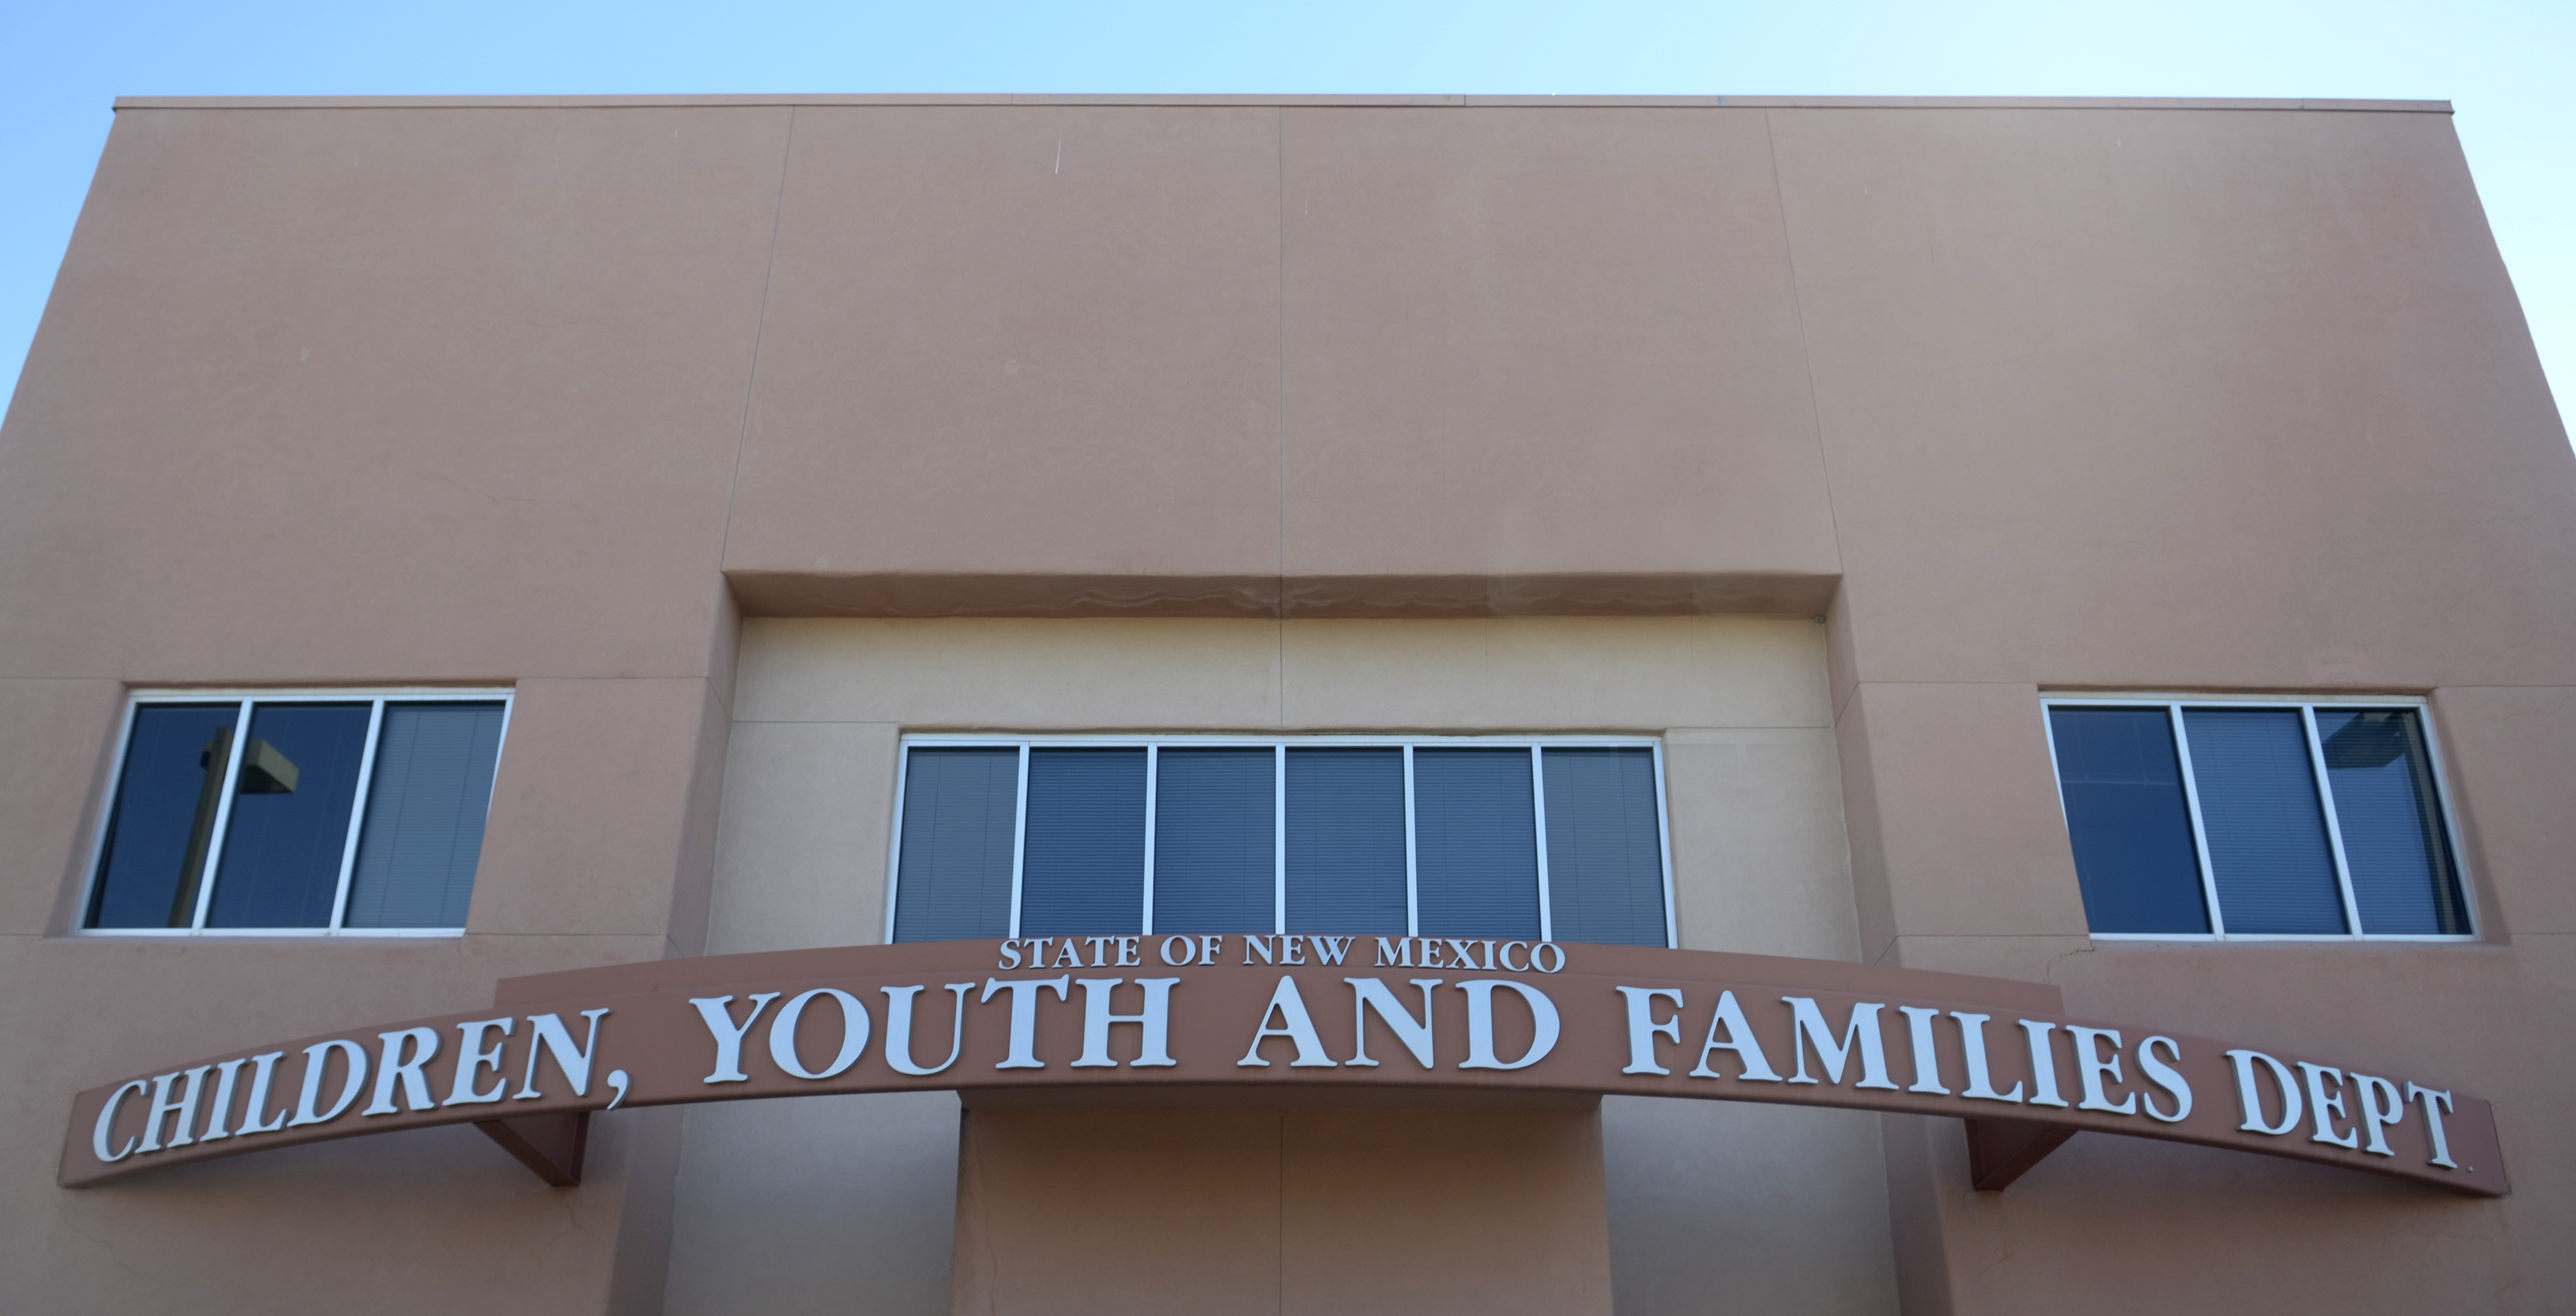 CYFD, treatment center sued over alleged sexual abuse